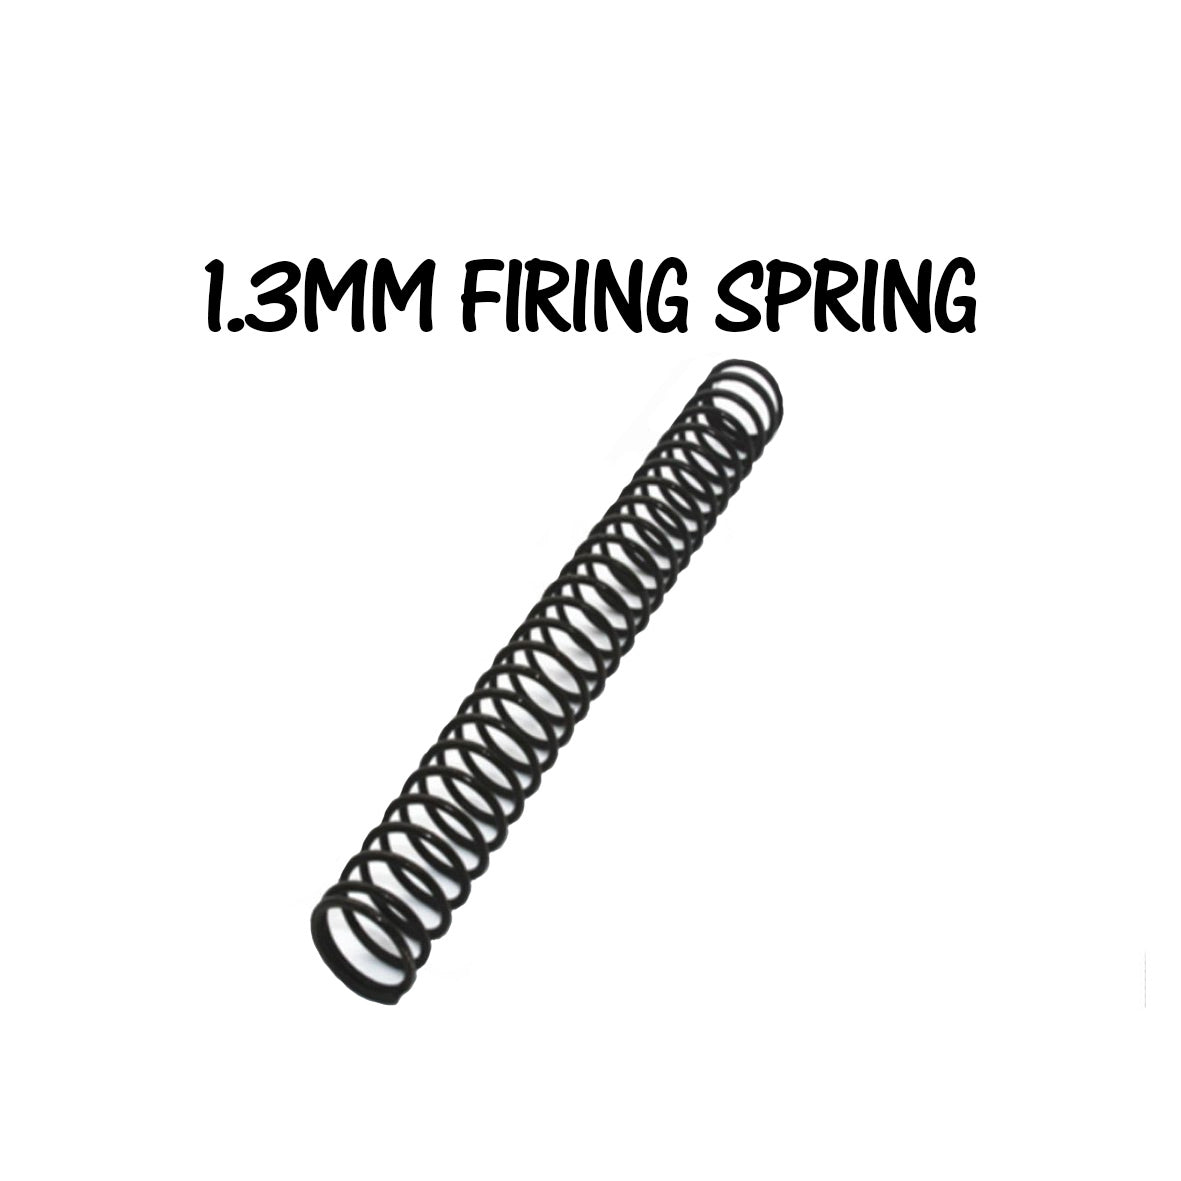 1.3mm Firing Spring (Short)